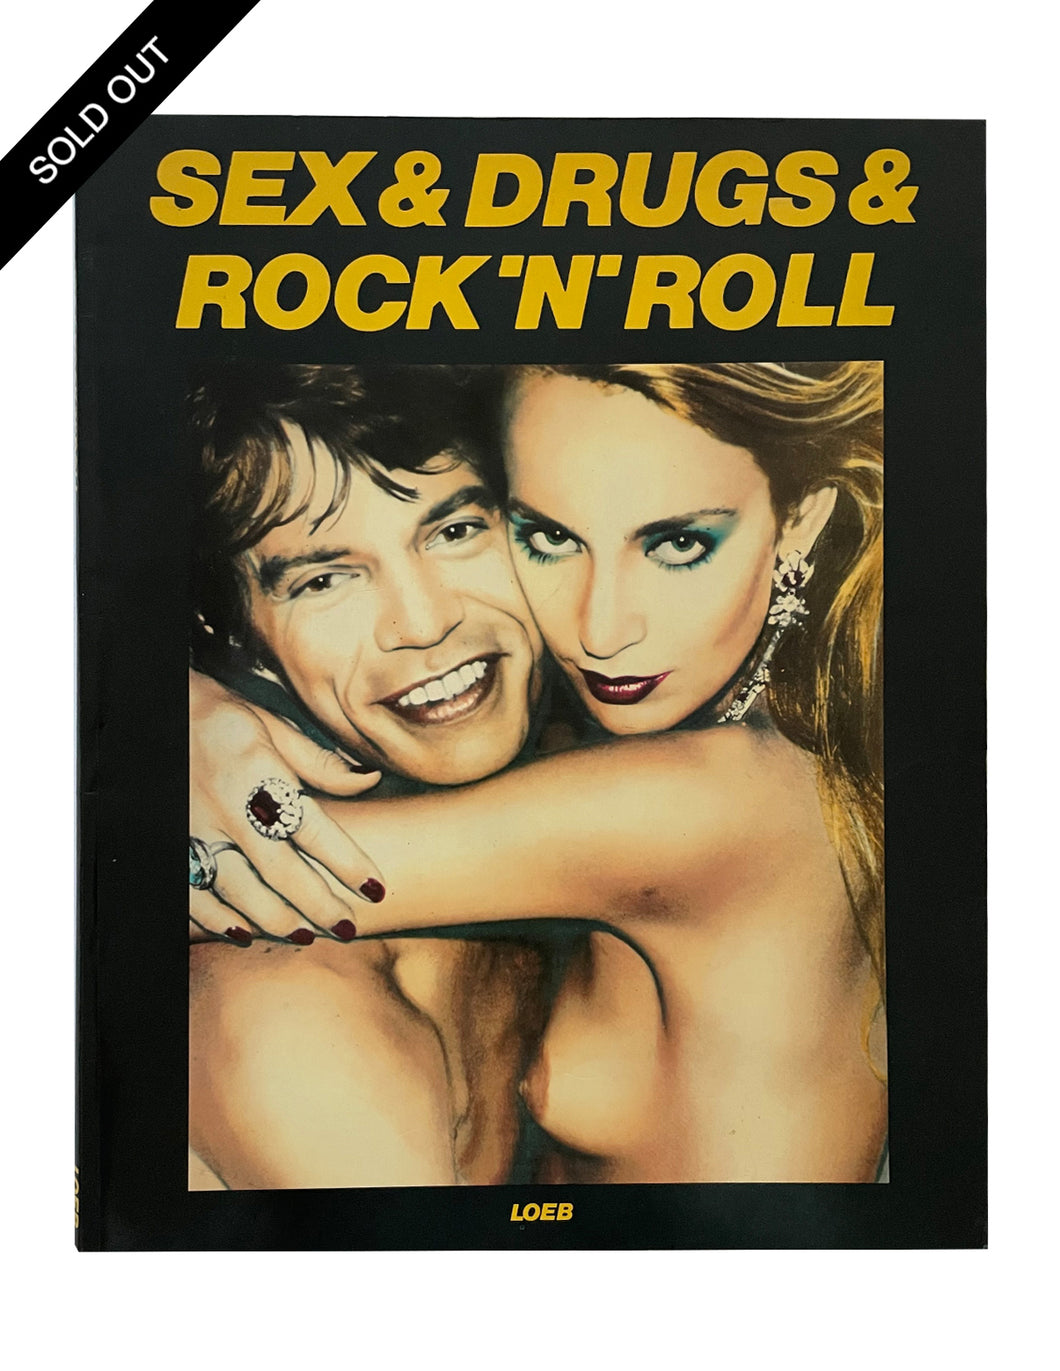 Sex, Drugs and Rock'n'Roll